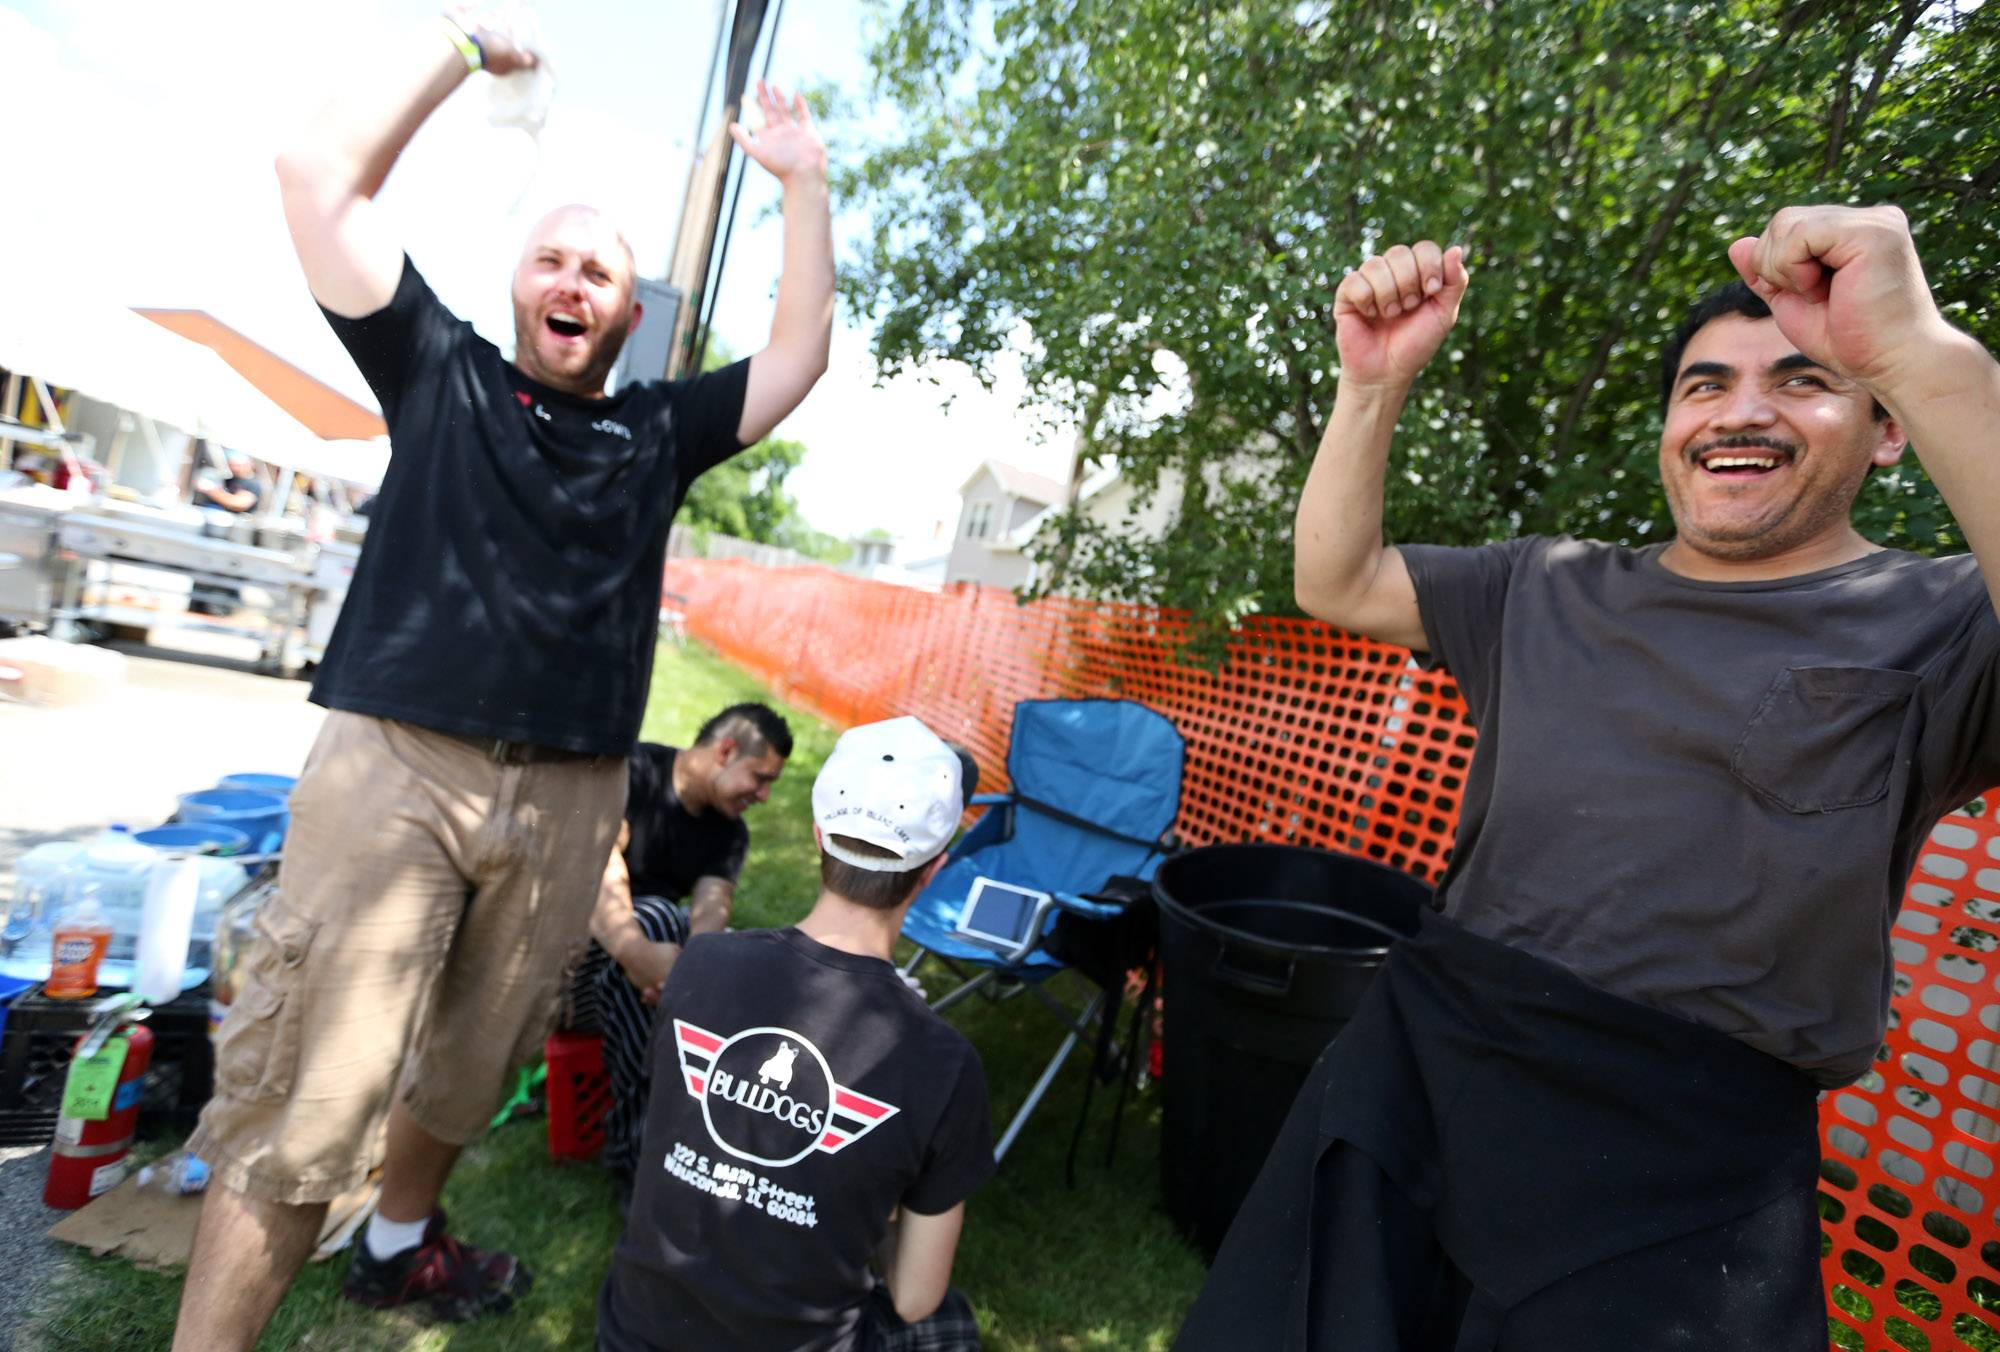 Patrick Ringel, manager of Bulldogs Grill in Wauconda, left, and grill chef Martin Velazquez, celebrate a goal by Chili against Brazil in the World Cup while watching the game on an ipad during a break behind the restaurant's stand at the third day of Wauconda Fest on Saturday.